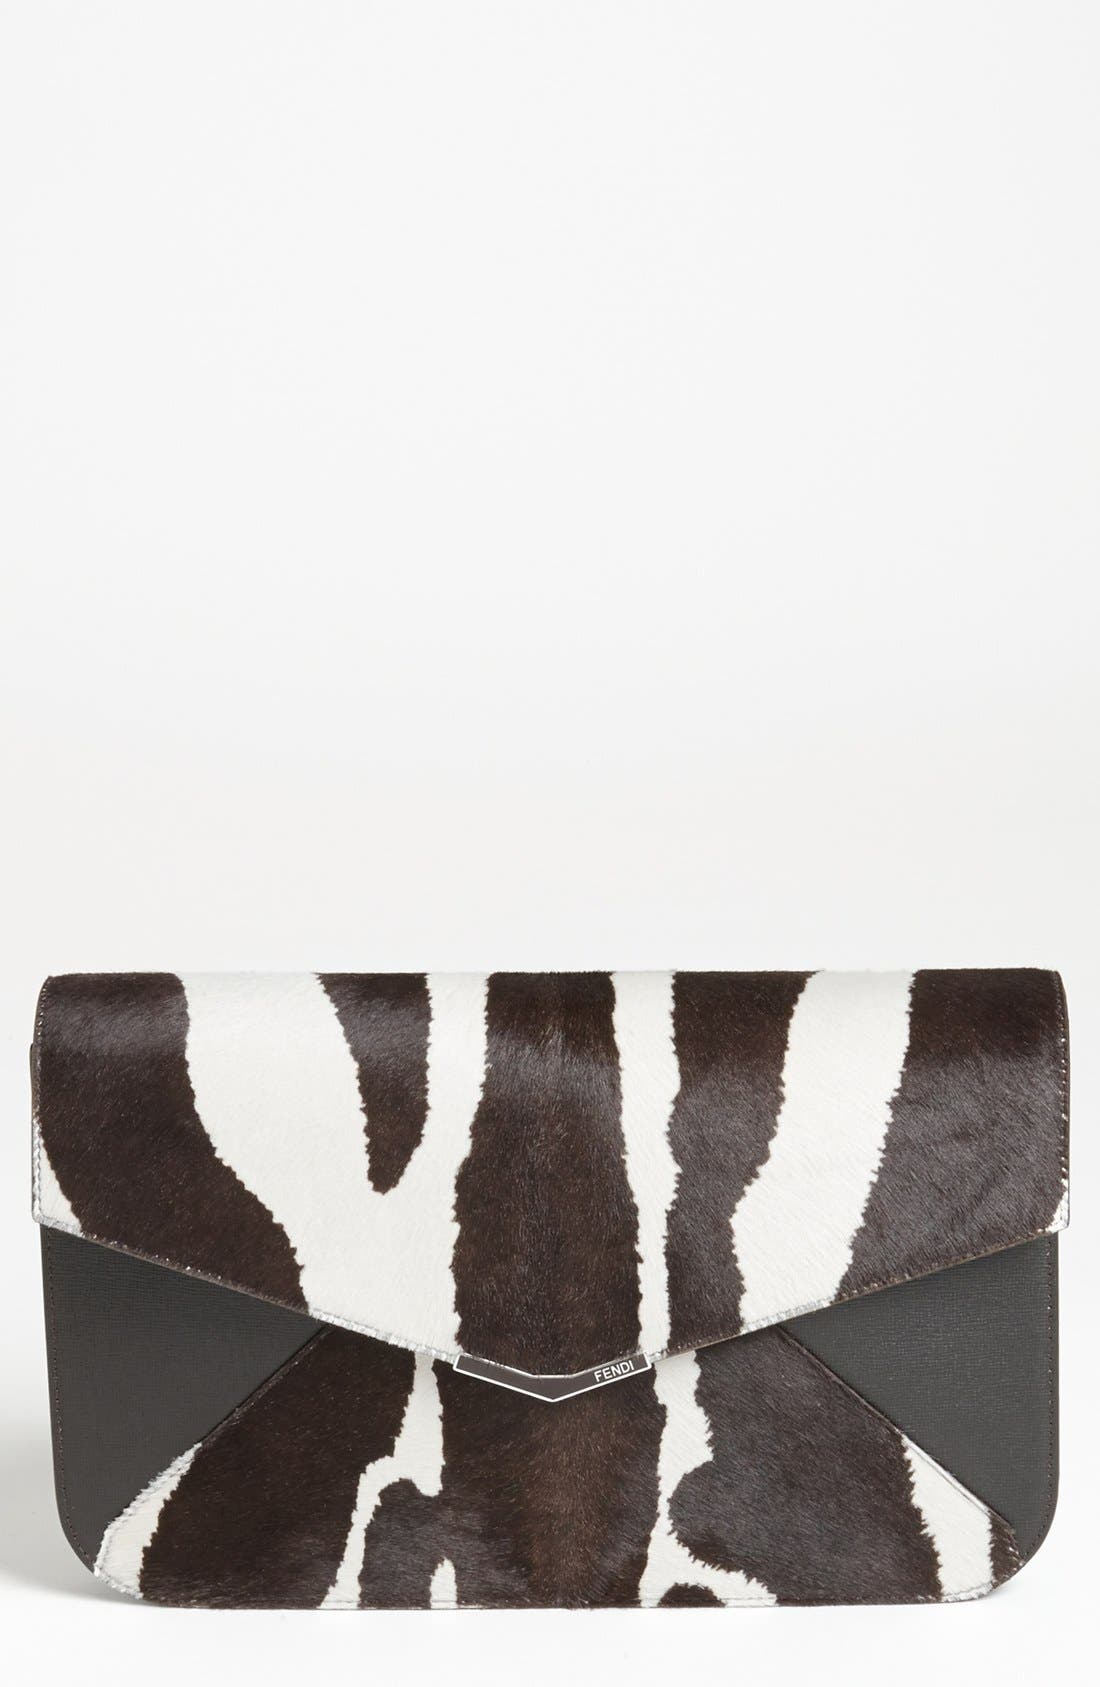 Main Image - Fendi '2Jours - Large' Calf Hair & Leather Clutch